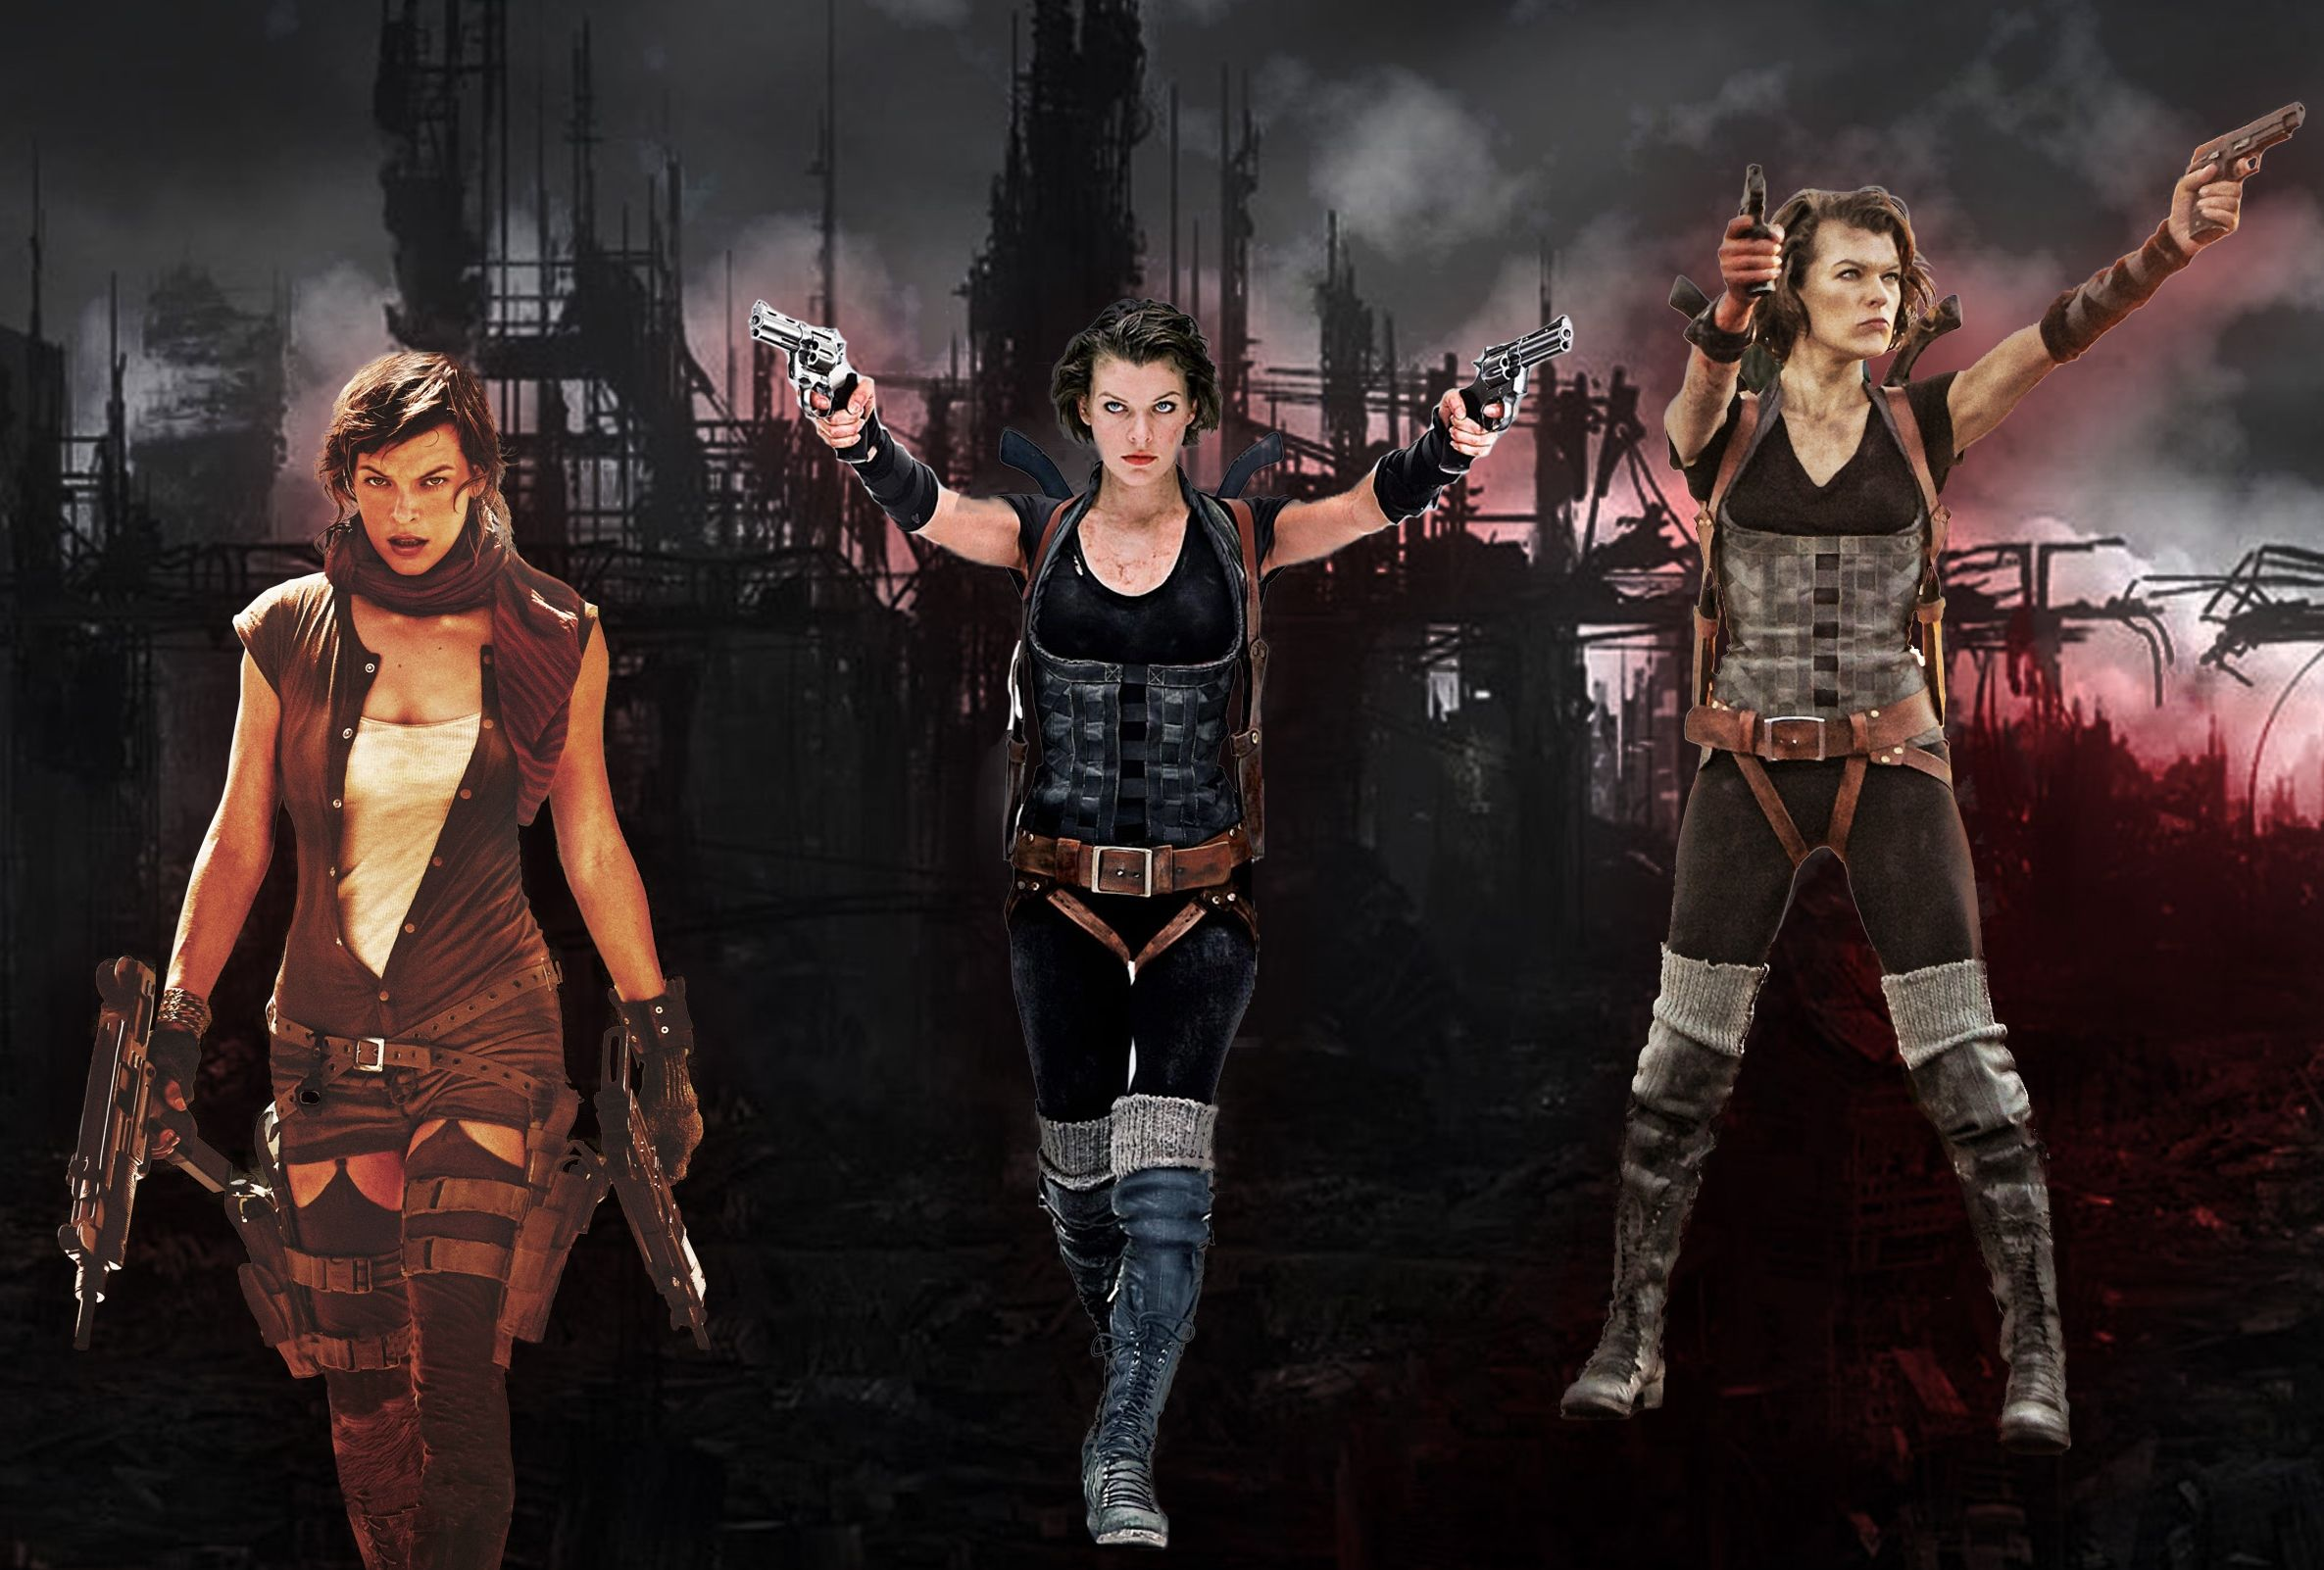 Alice's outfits from Resident Evil: Extinction and Afterlife